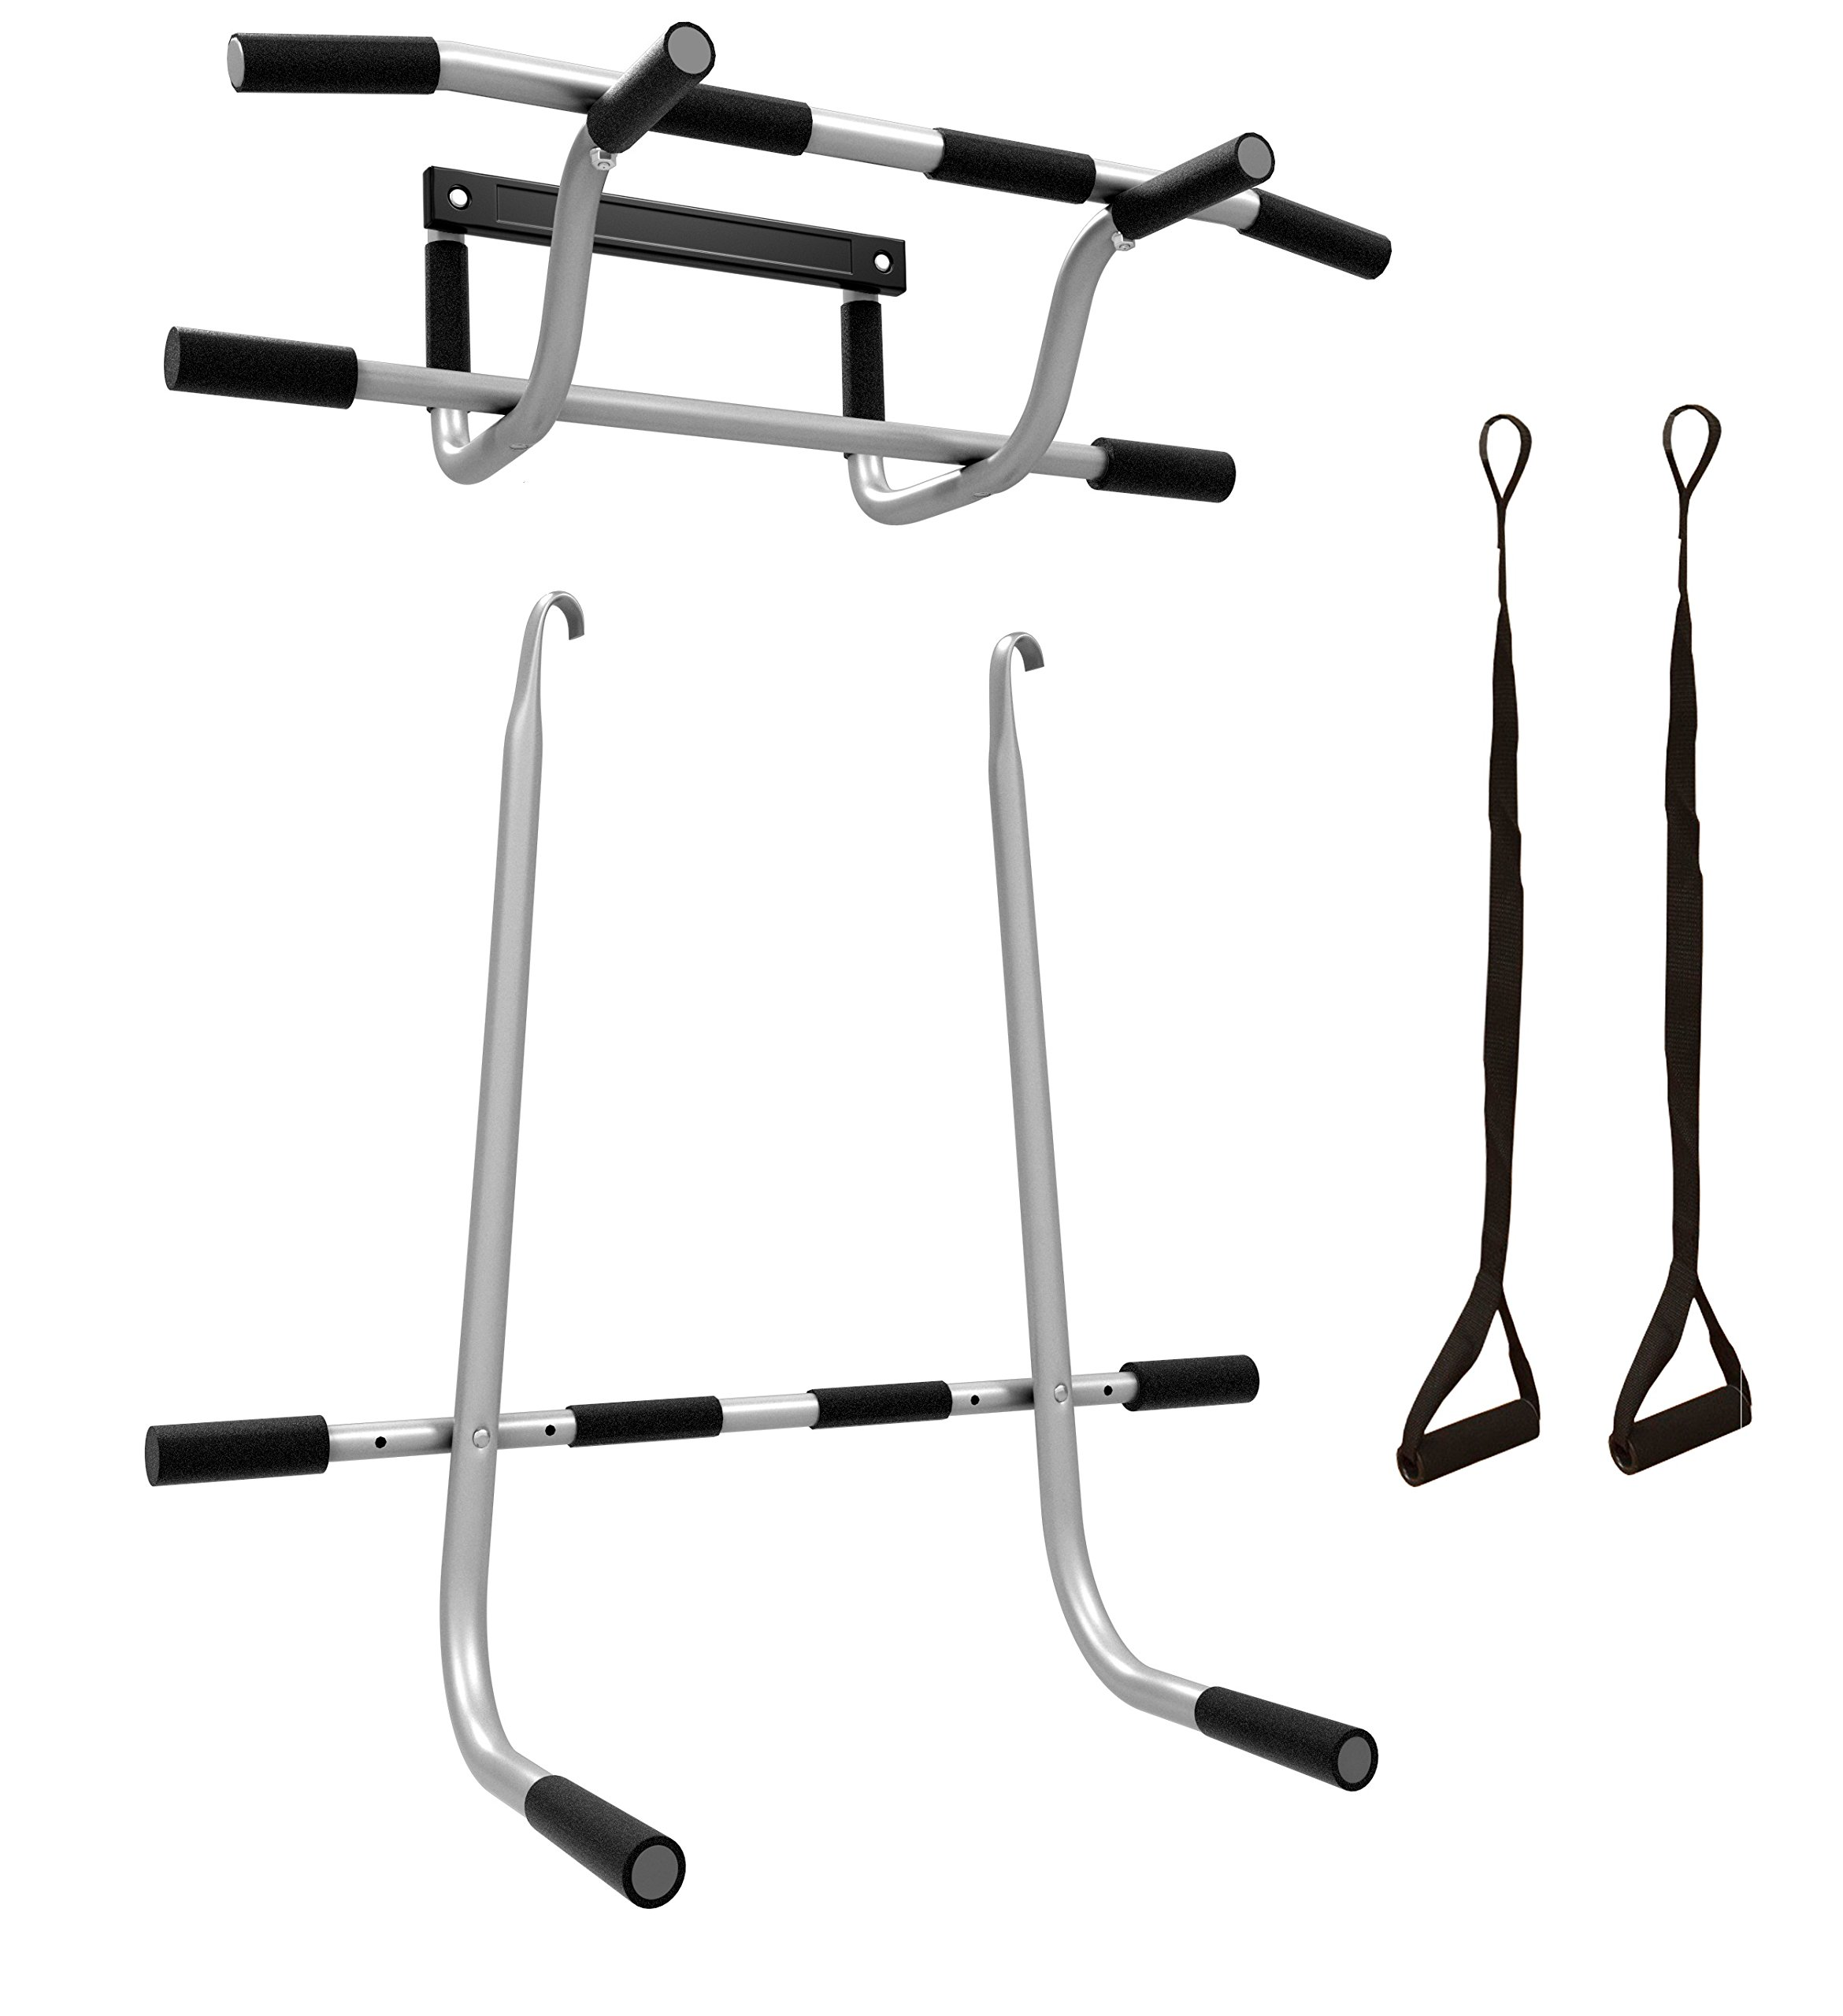 kg en bar loops doorway incl up door pull image for weight frame chin push exercise equipment